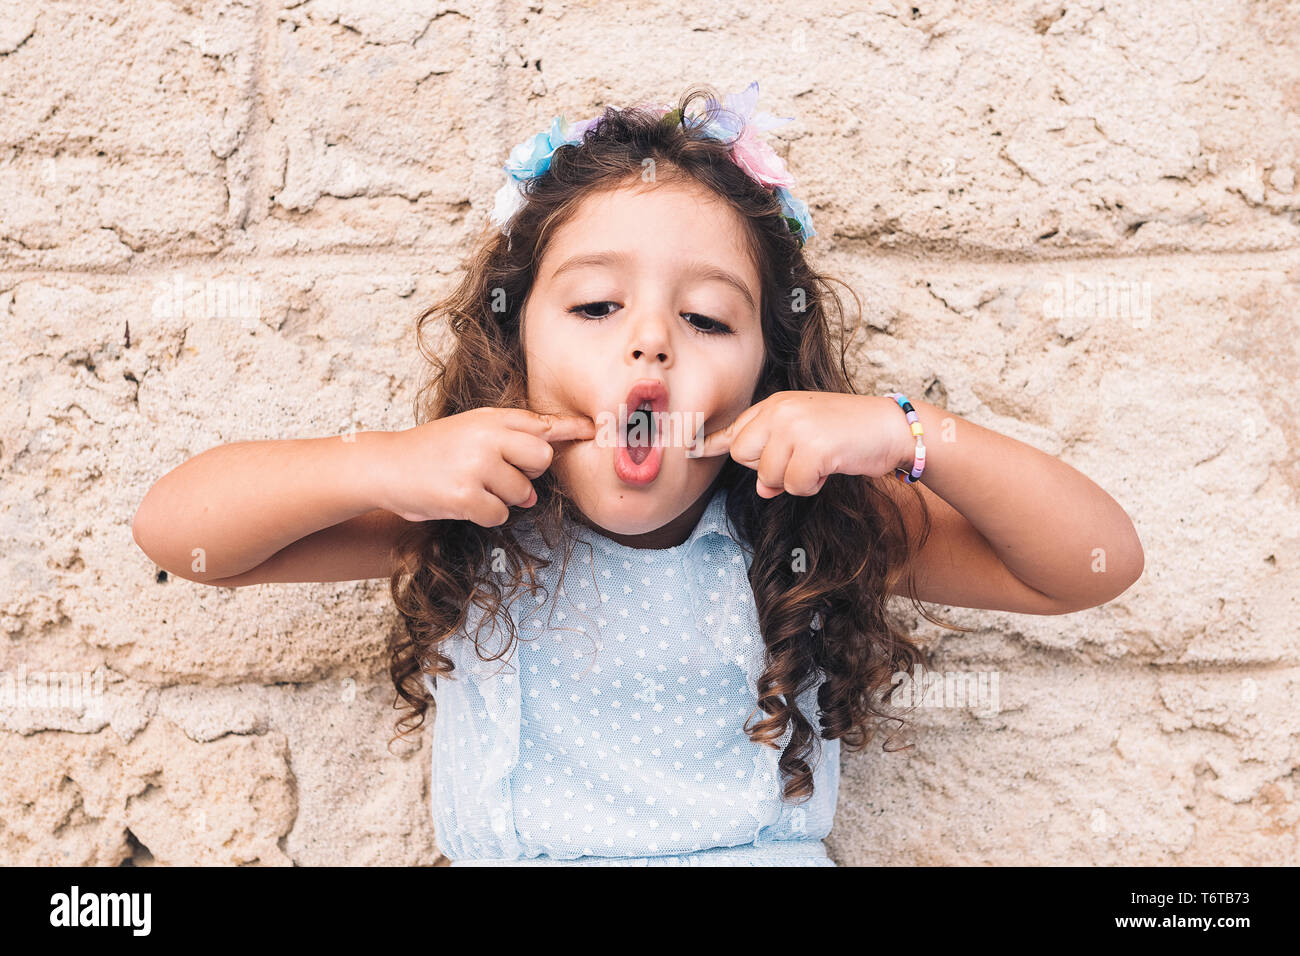 little girl making fun with her face, is in front of a stone wall and wears a blue dress and a flower headband - Stock Image